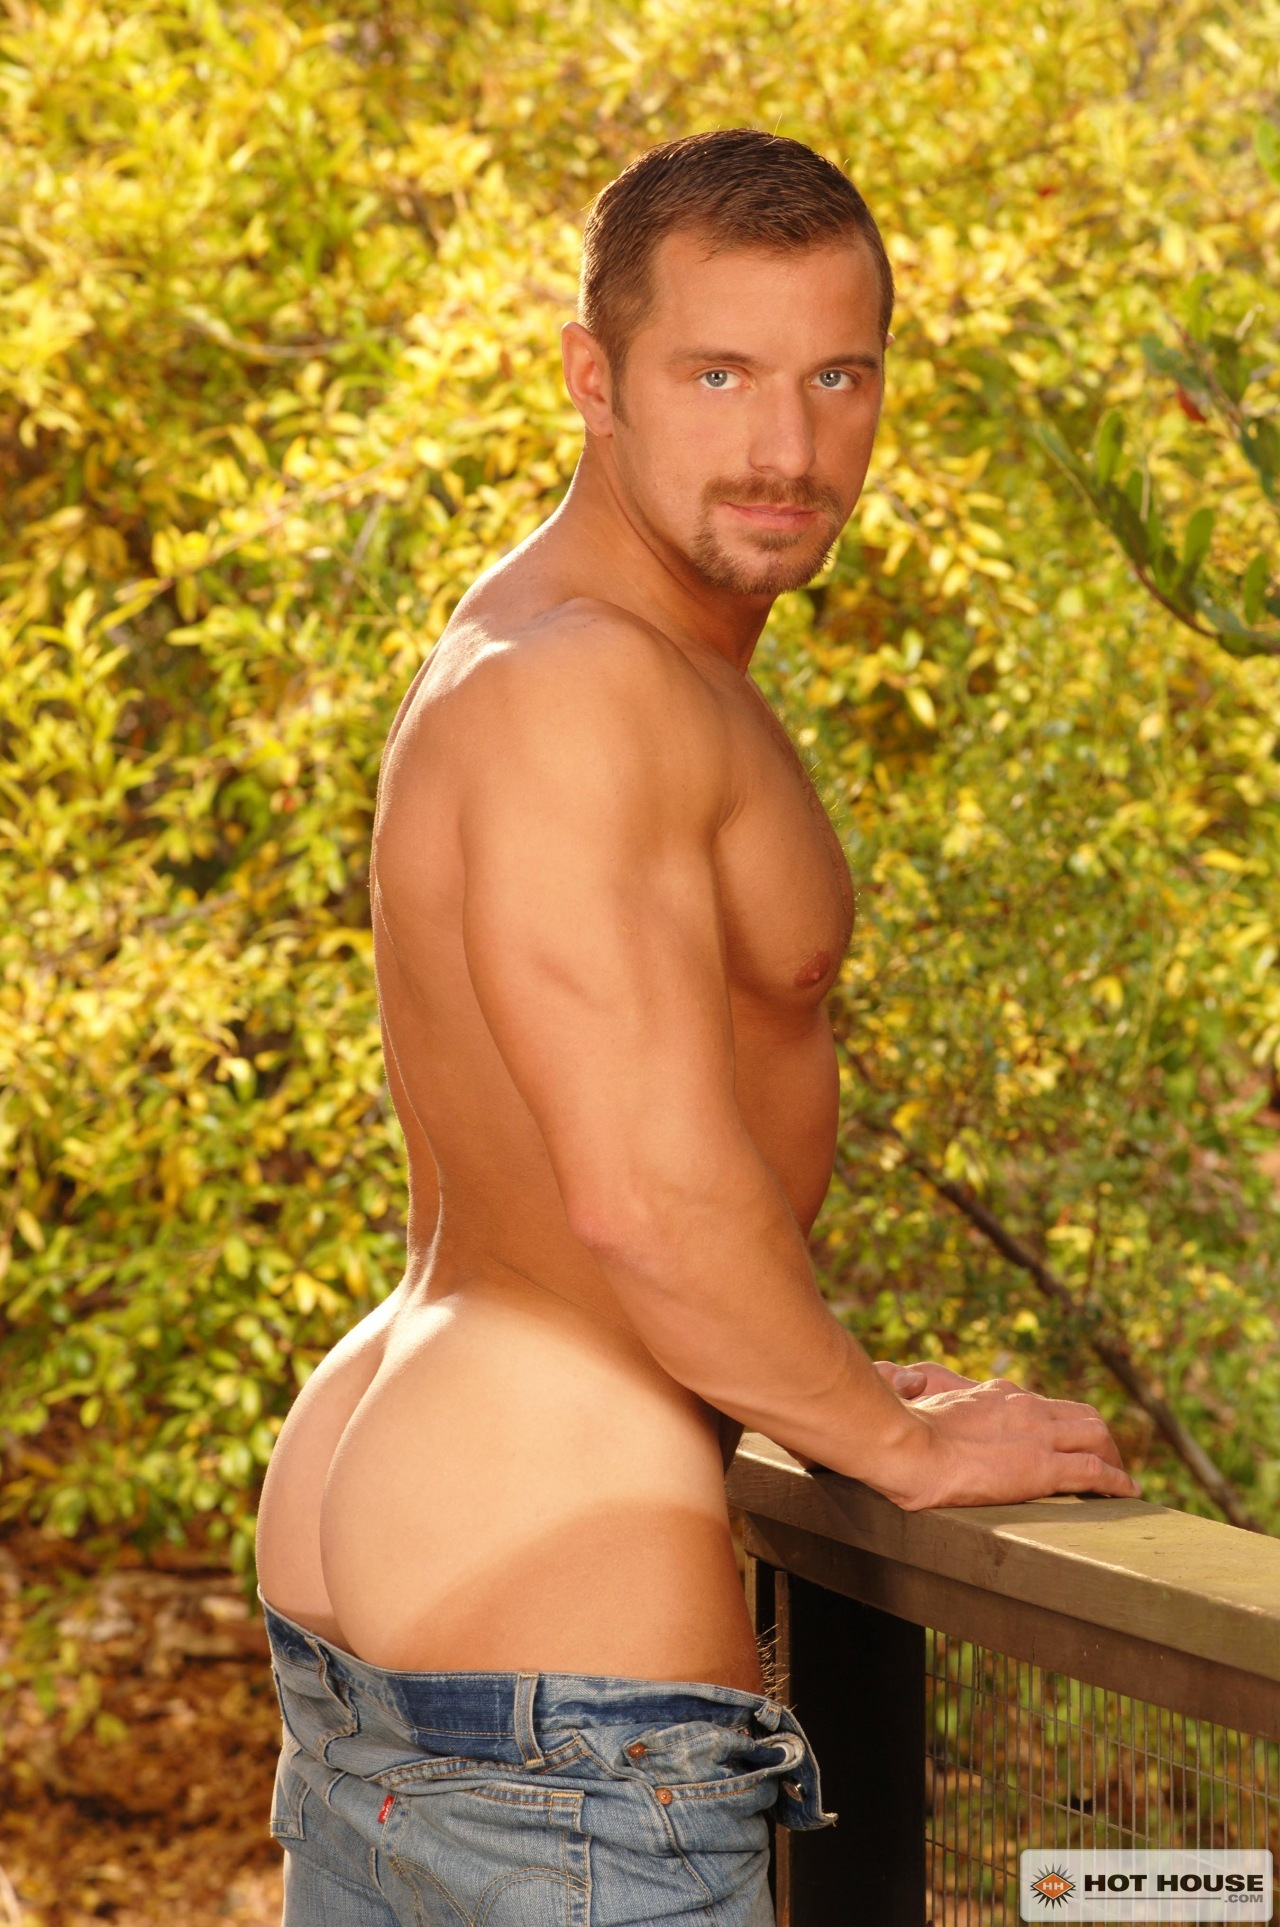 Free gay porn galleries. Gay sex photos and clips.